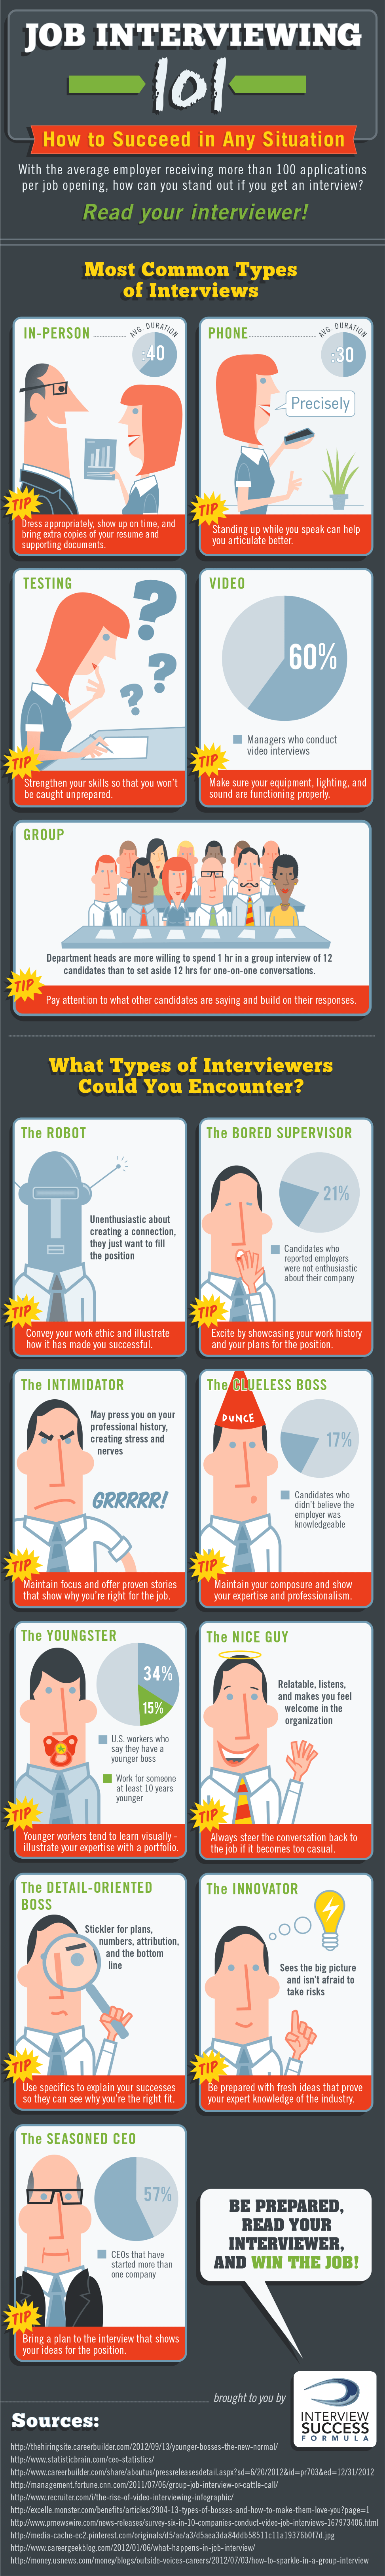 Job-Interviewing-Infographic